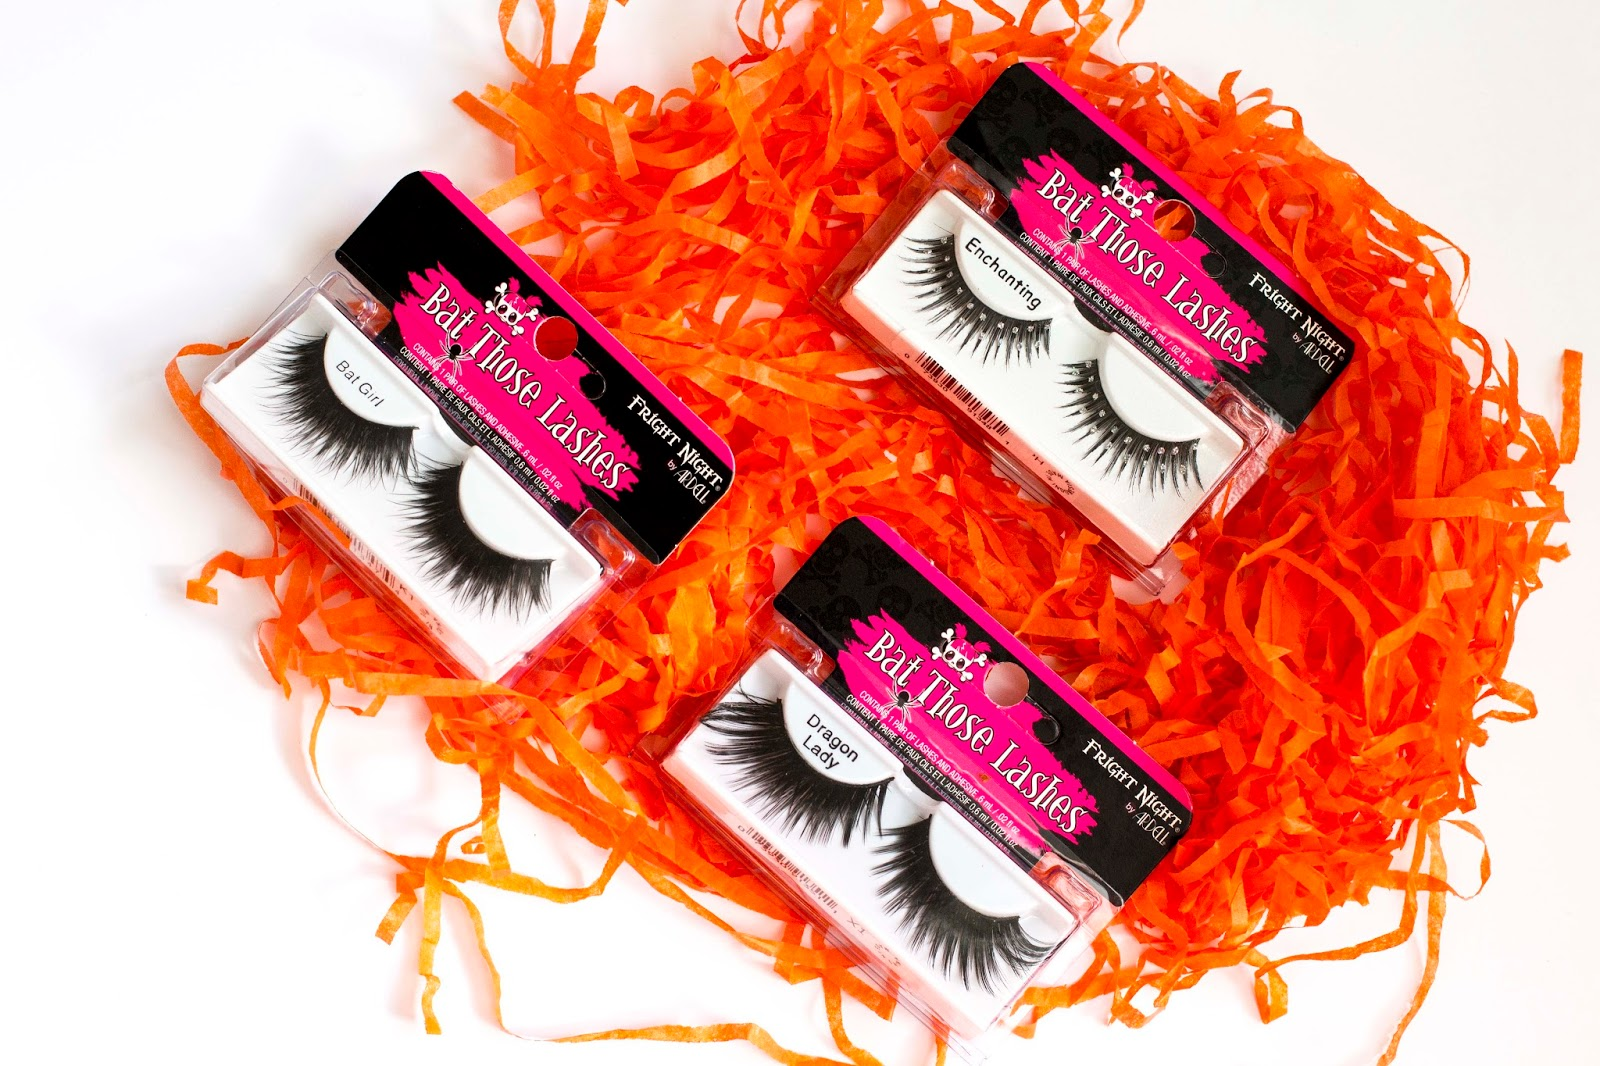 Ardell Have Created Three Beautiful Sets Of Lashes Especially For Halloween The Collection Is Cleverly Named Bat Those Lashes And Three Completely